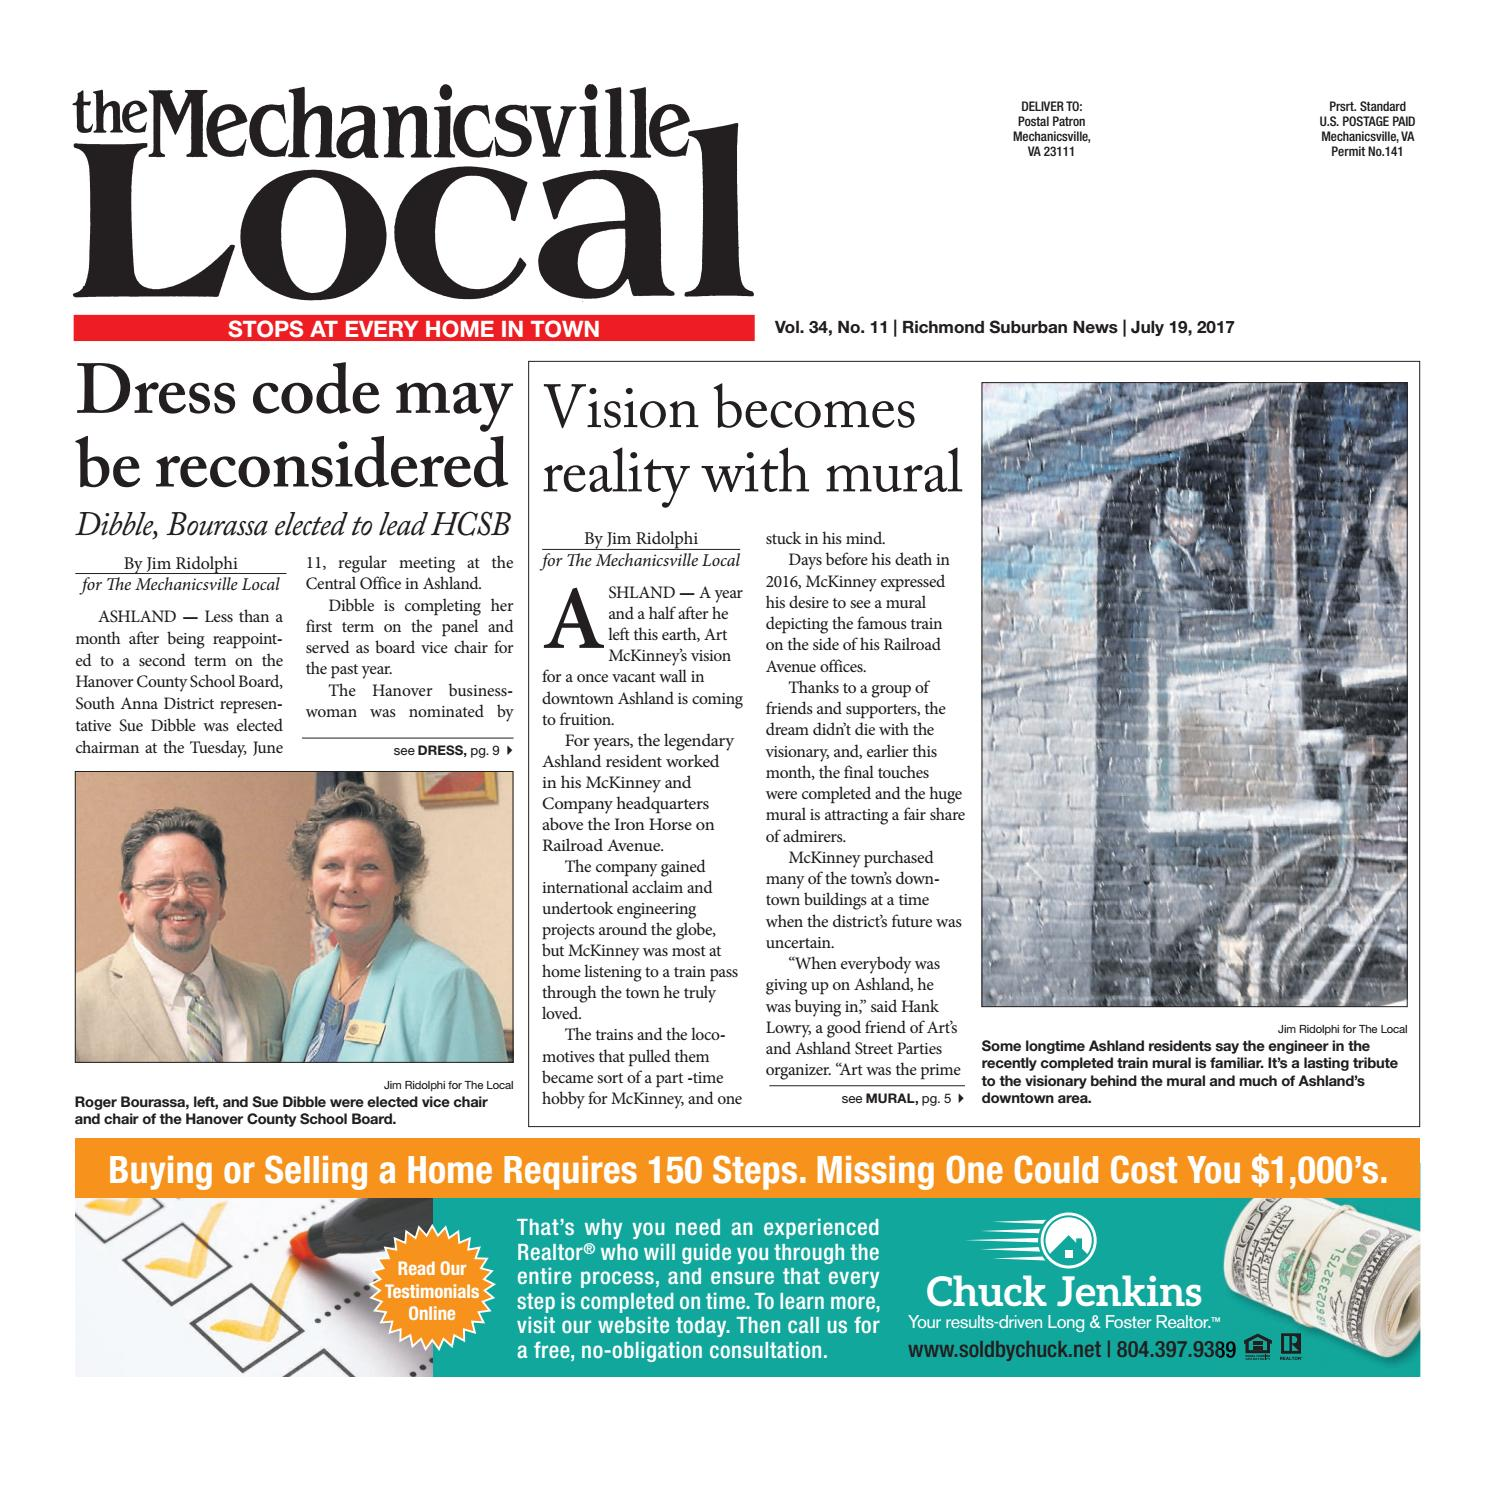 07 19 17 by The Mechanicsville Local - issuu 9bd8e06c5